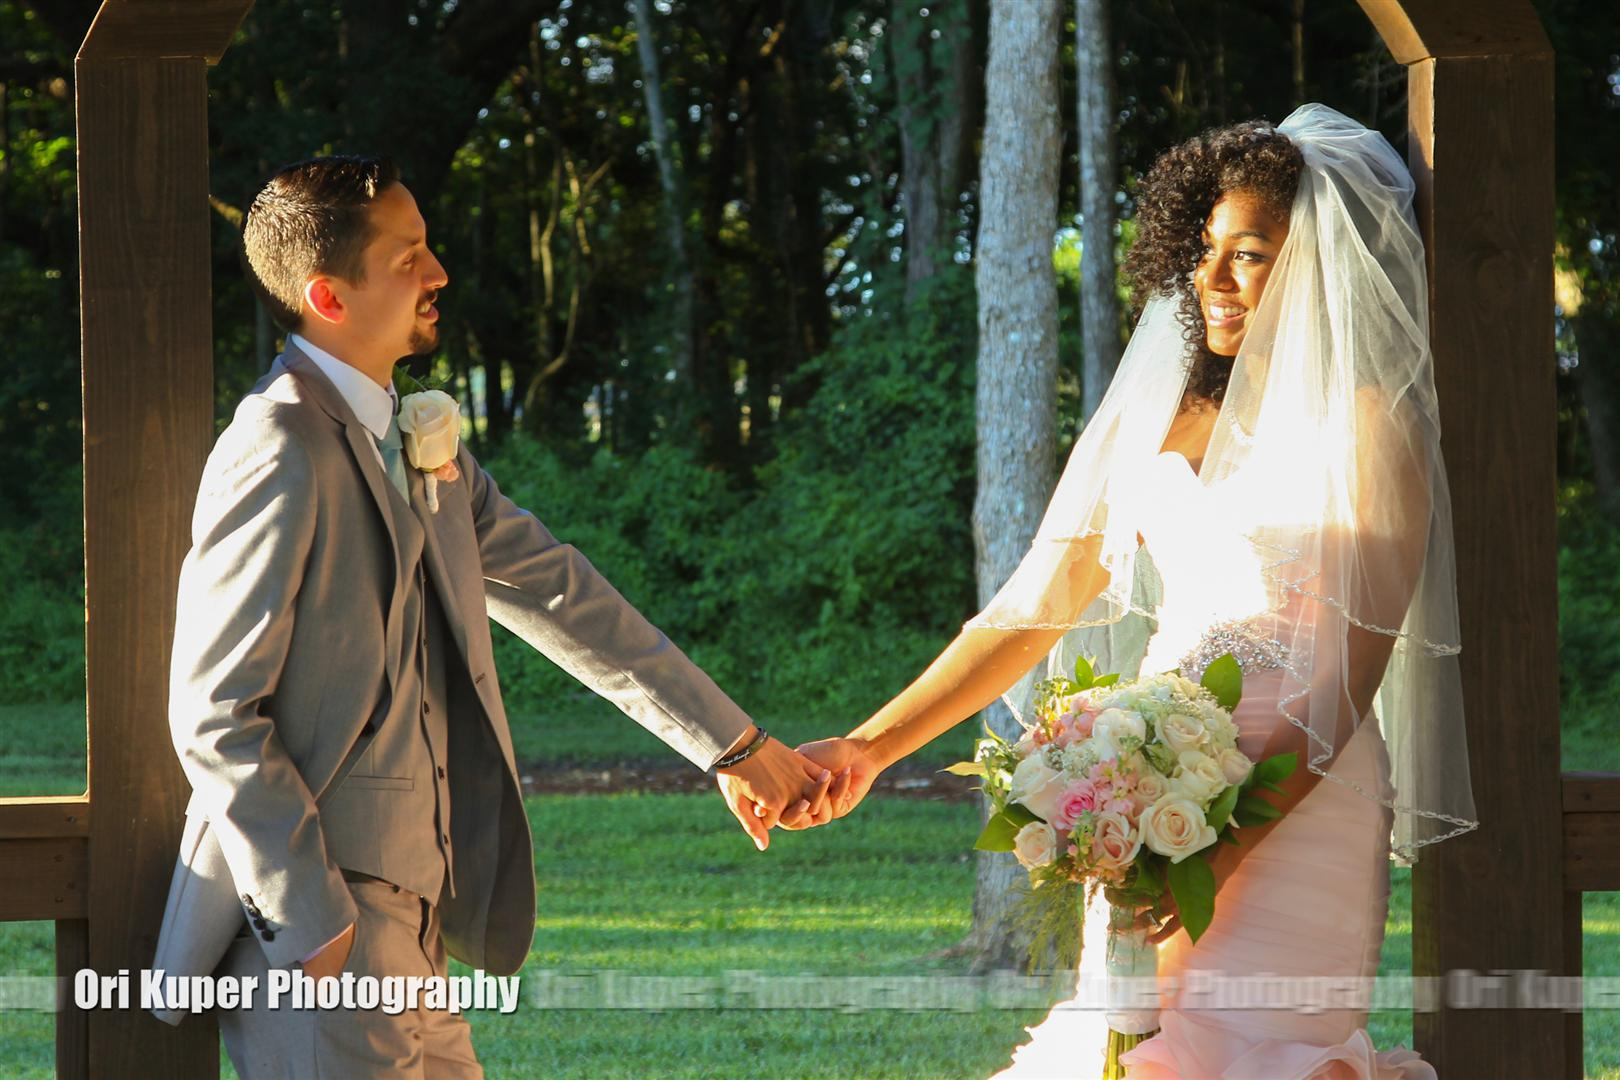 Ori Kuper Photography Weddings Josh Aubrey IMG_4510.jpg